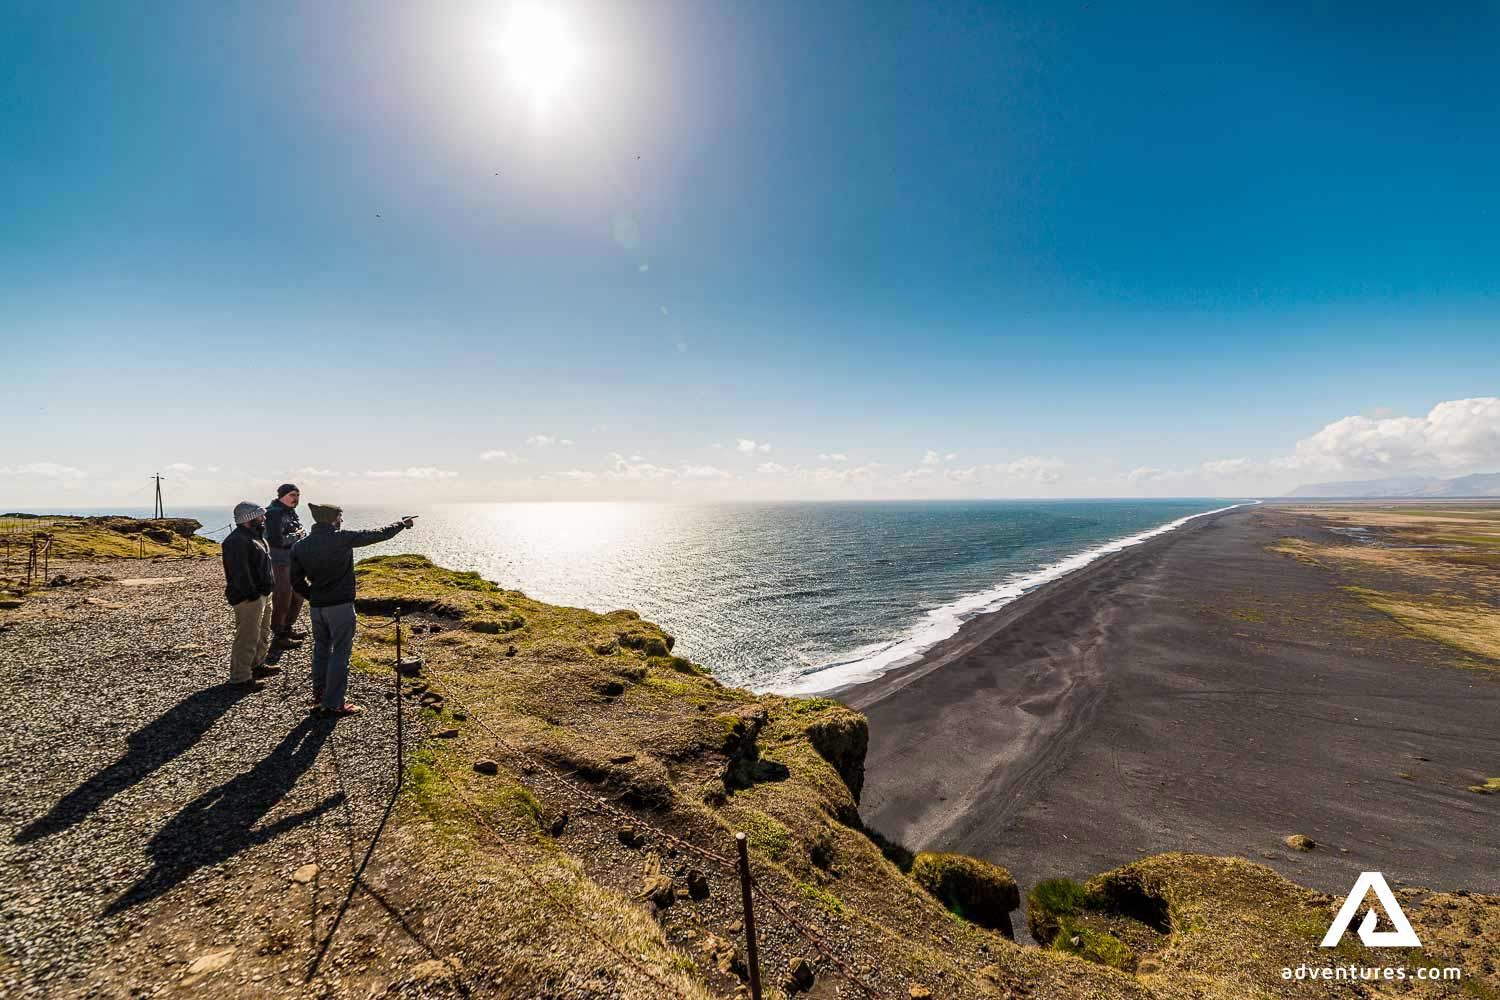 10 day self drive tour ring road of iceland extreme iceland seljalandsfoss waterfall dyrholaey self drive iceland solutioingenieria Images